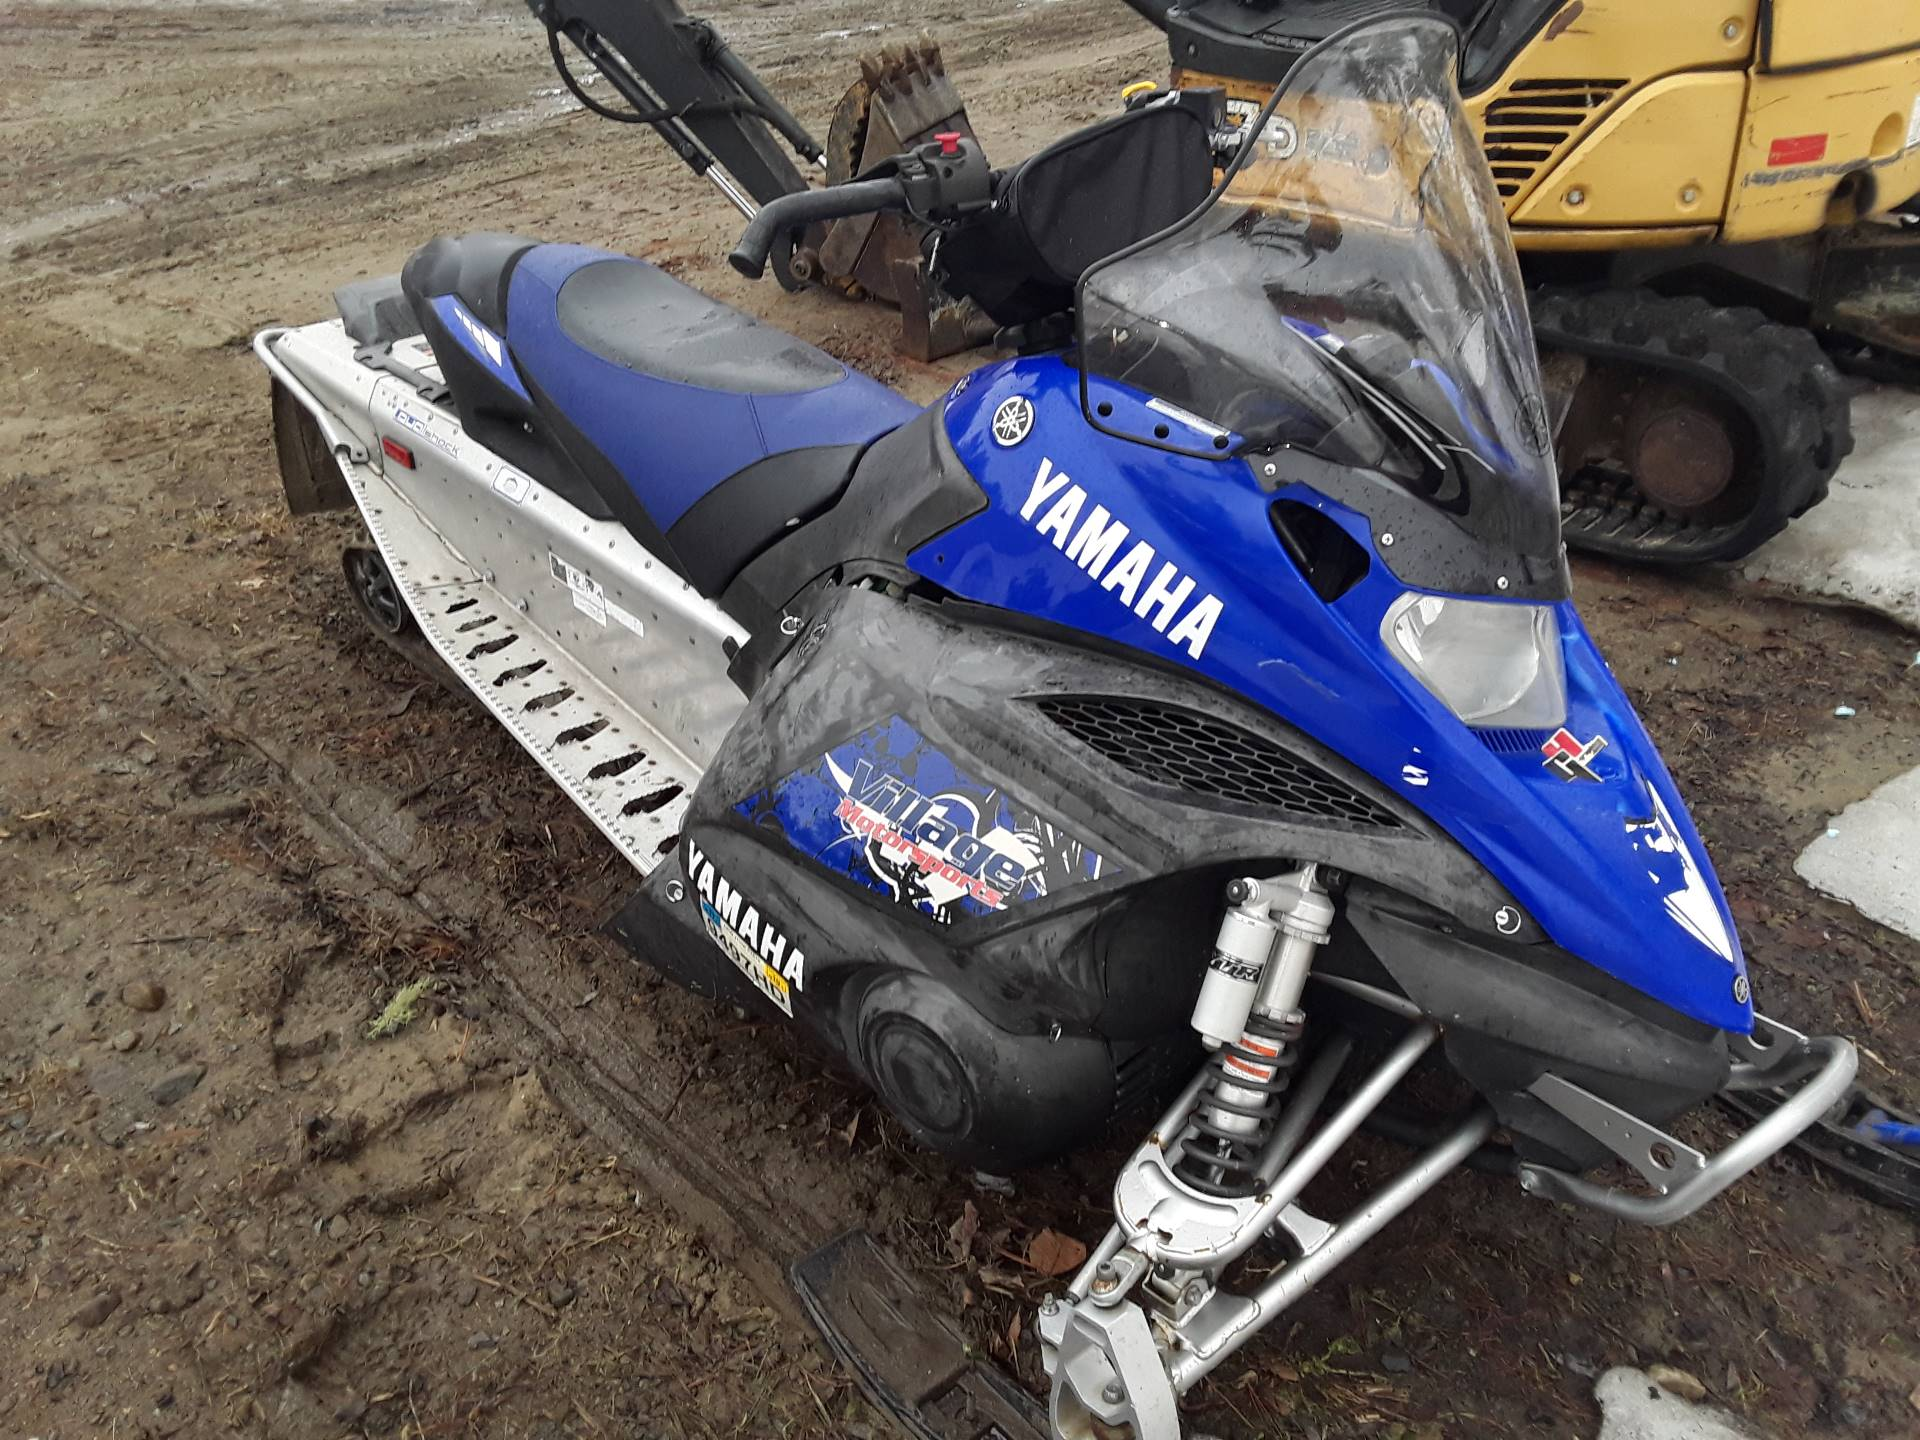 2009 Yamaha FX Nytro XTX in Speculator, New York - Photo 2